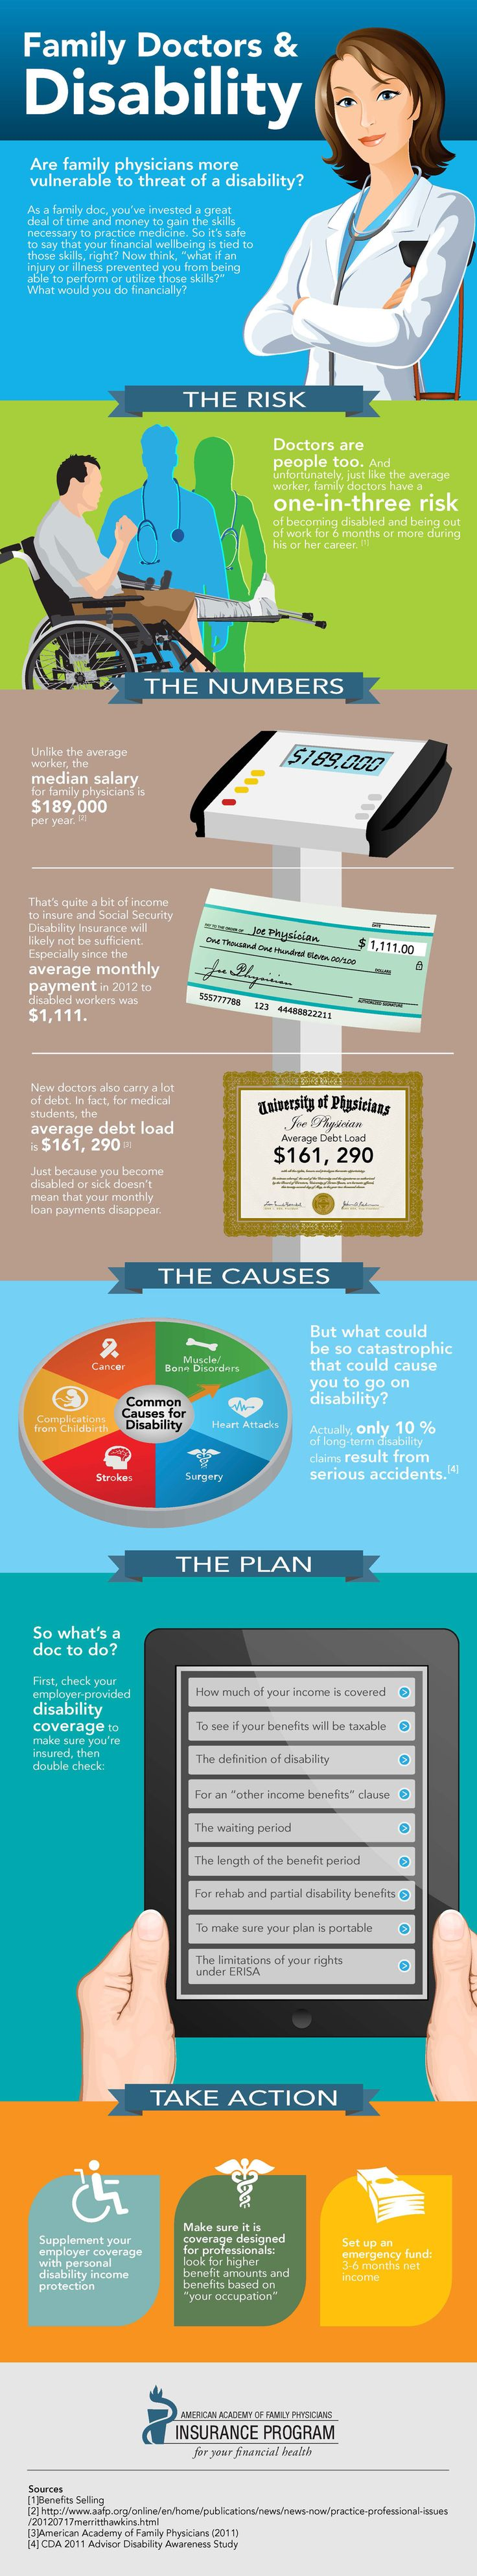 #INFOgraphic > Family Doctors Income Protection: People from AAFP examine the risk of injury and illness contingency for family doctors and the impact of a long or short-term disability on their financial stability in case of inadequate disability insurance coverage.  > http://infographicsmania.com/family-doctors-income-protection/